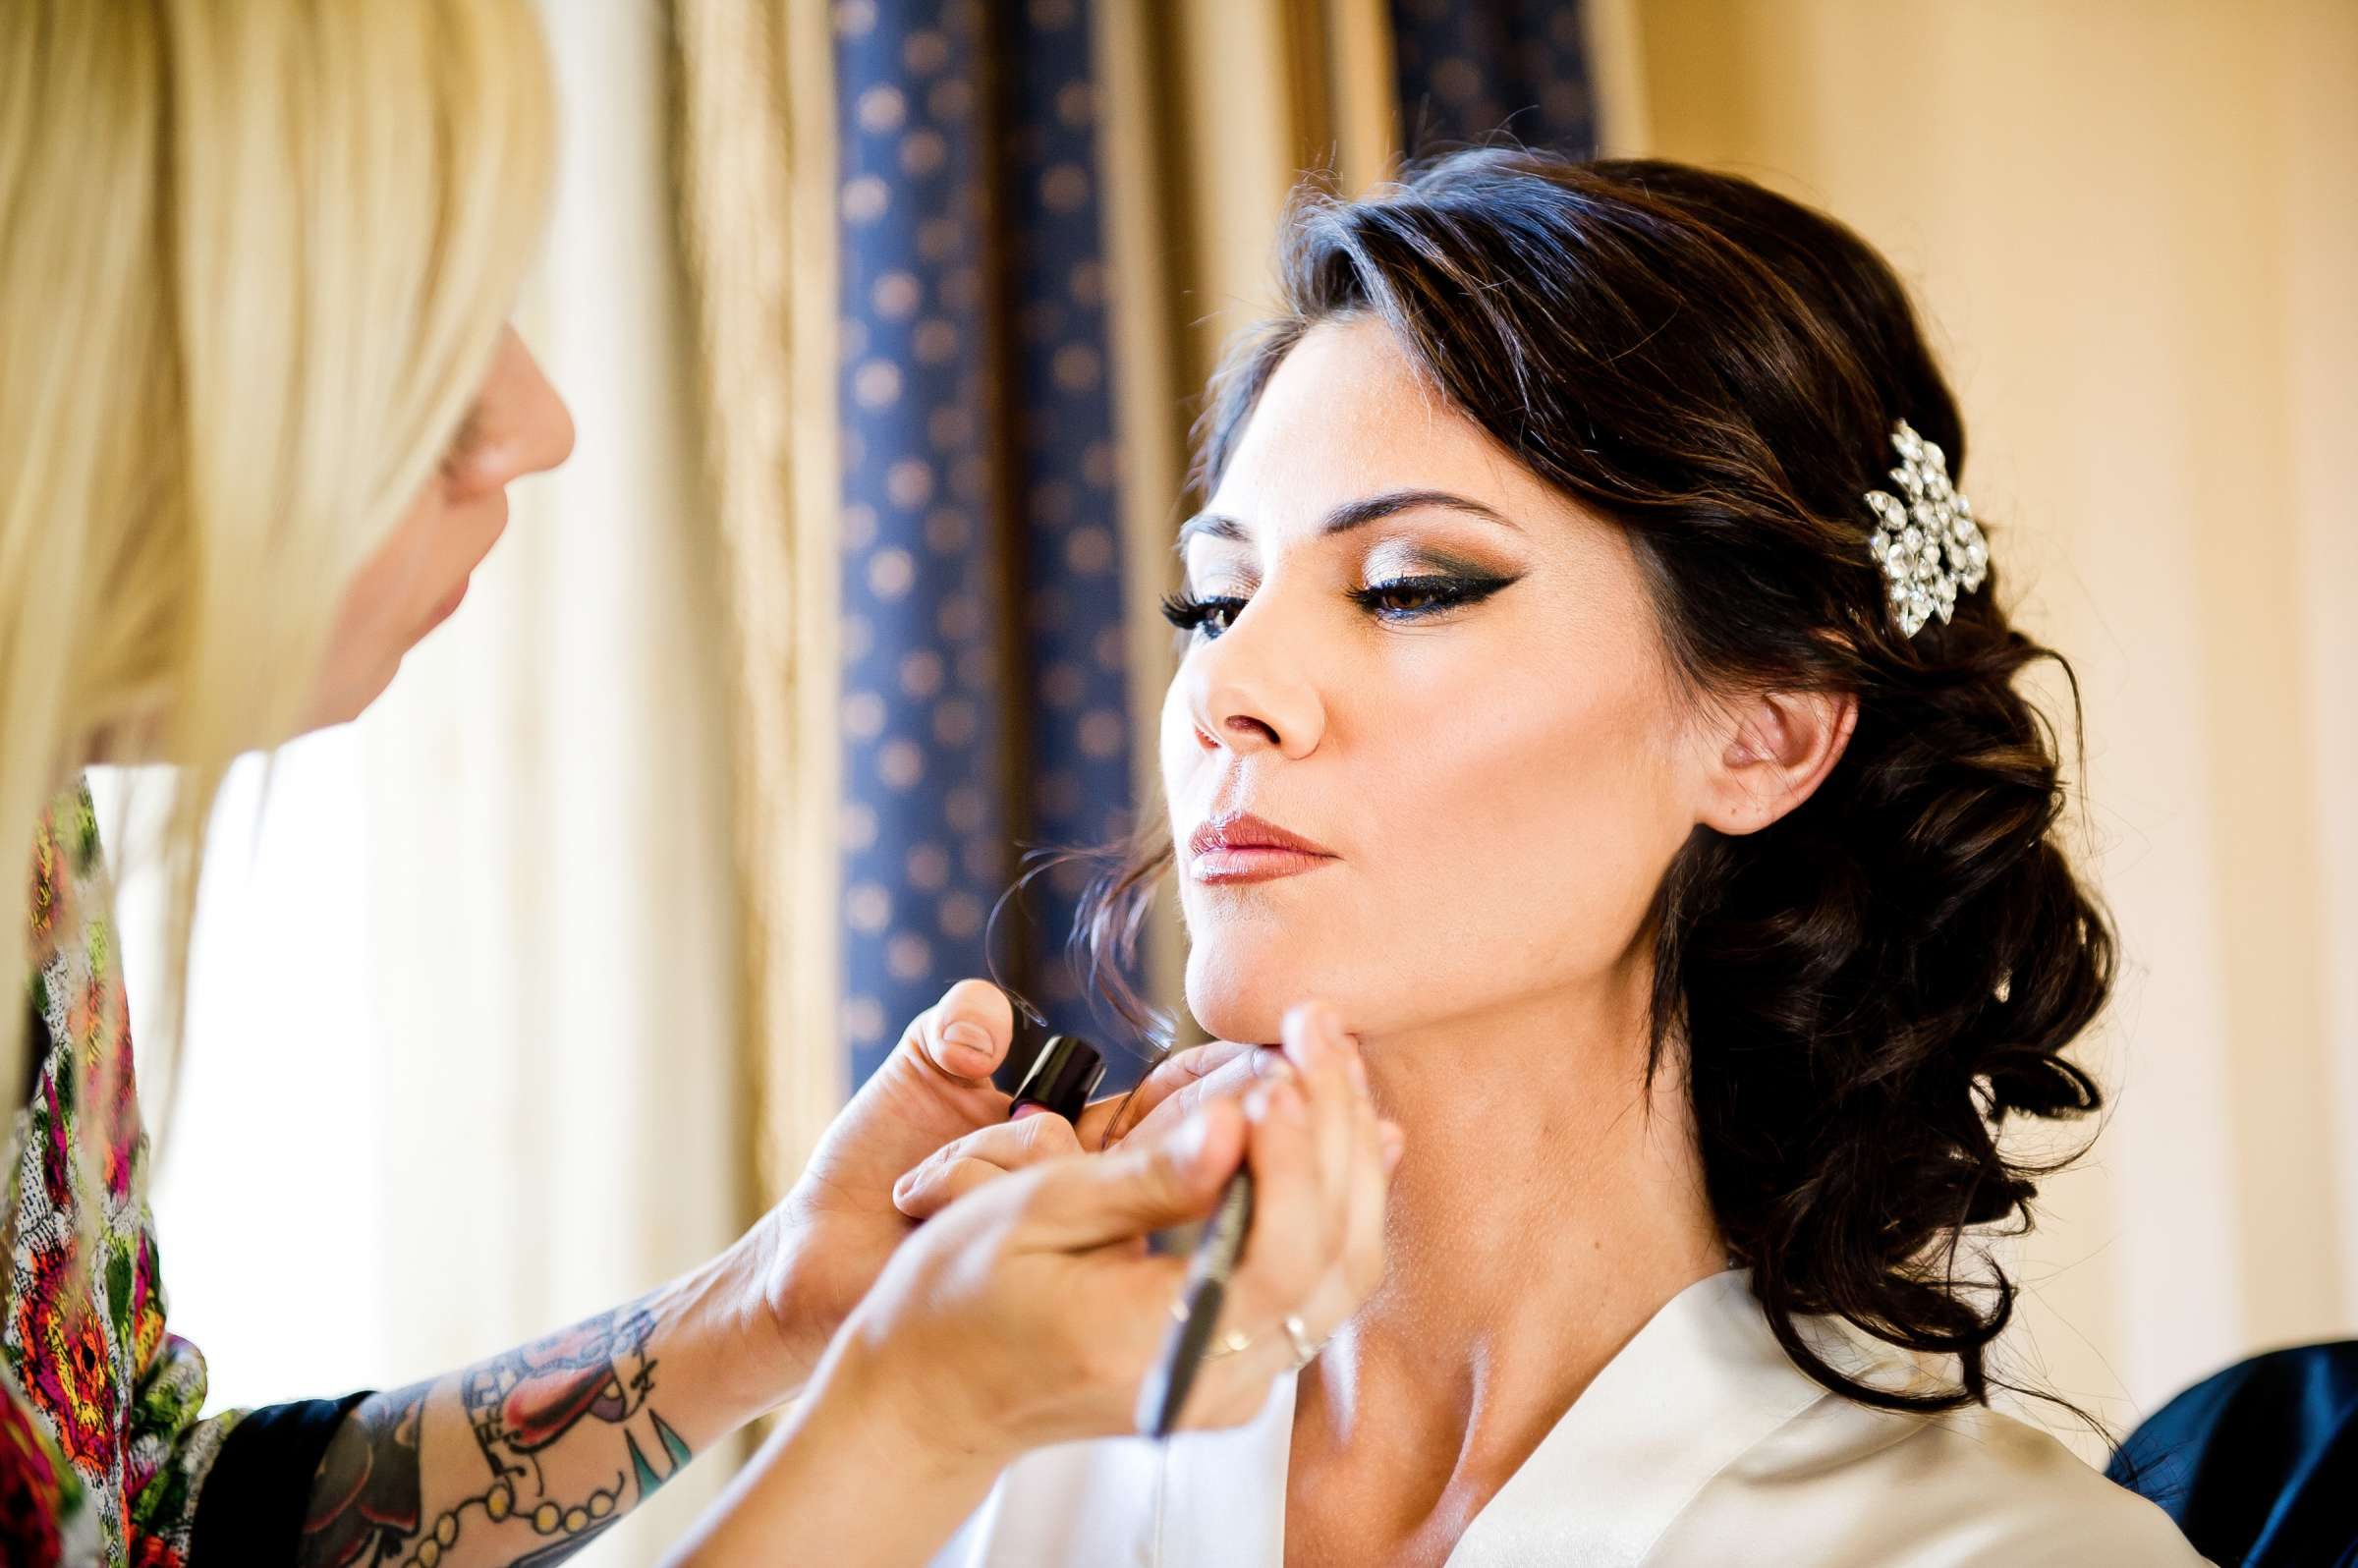 Fairmont Grand Del Mar Wedding, Angela and Tom Wedding Photo #15 by True Photography